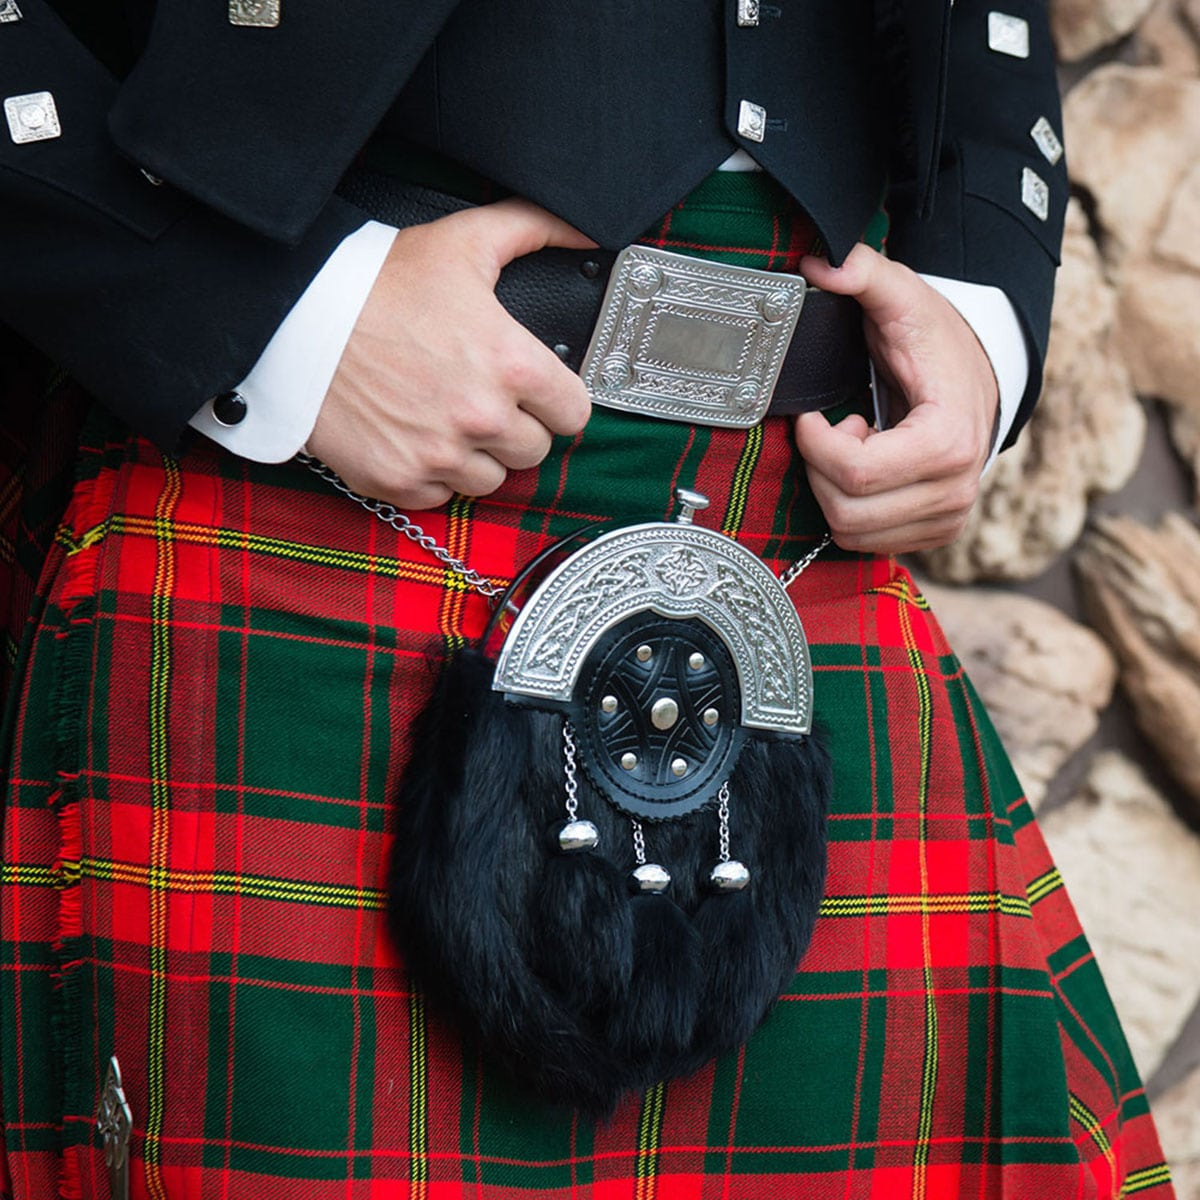 A belt and buckle worn with a wedding kilt and sporran